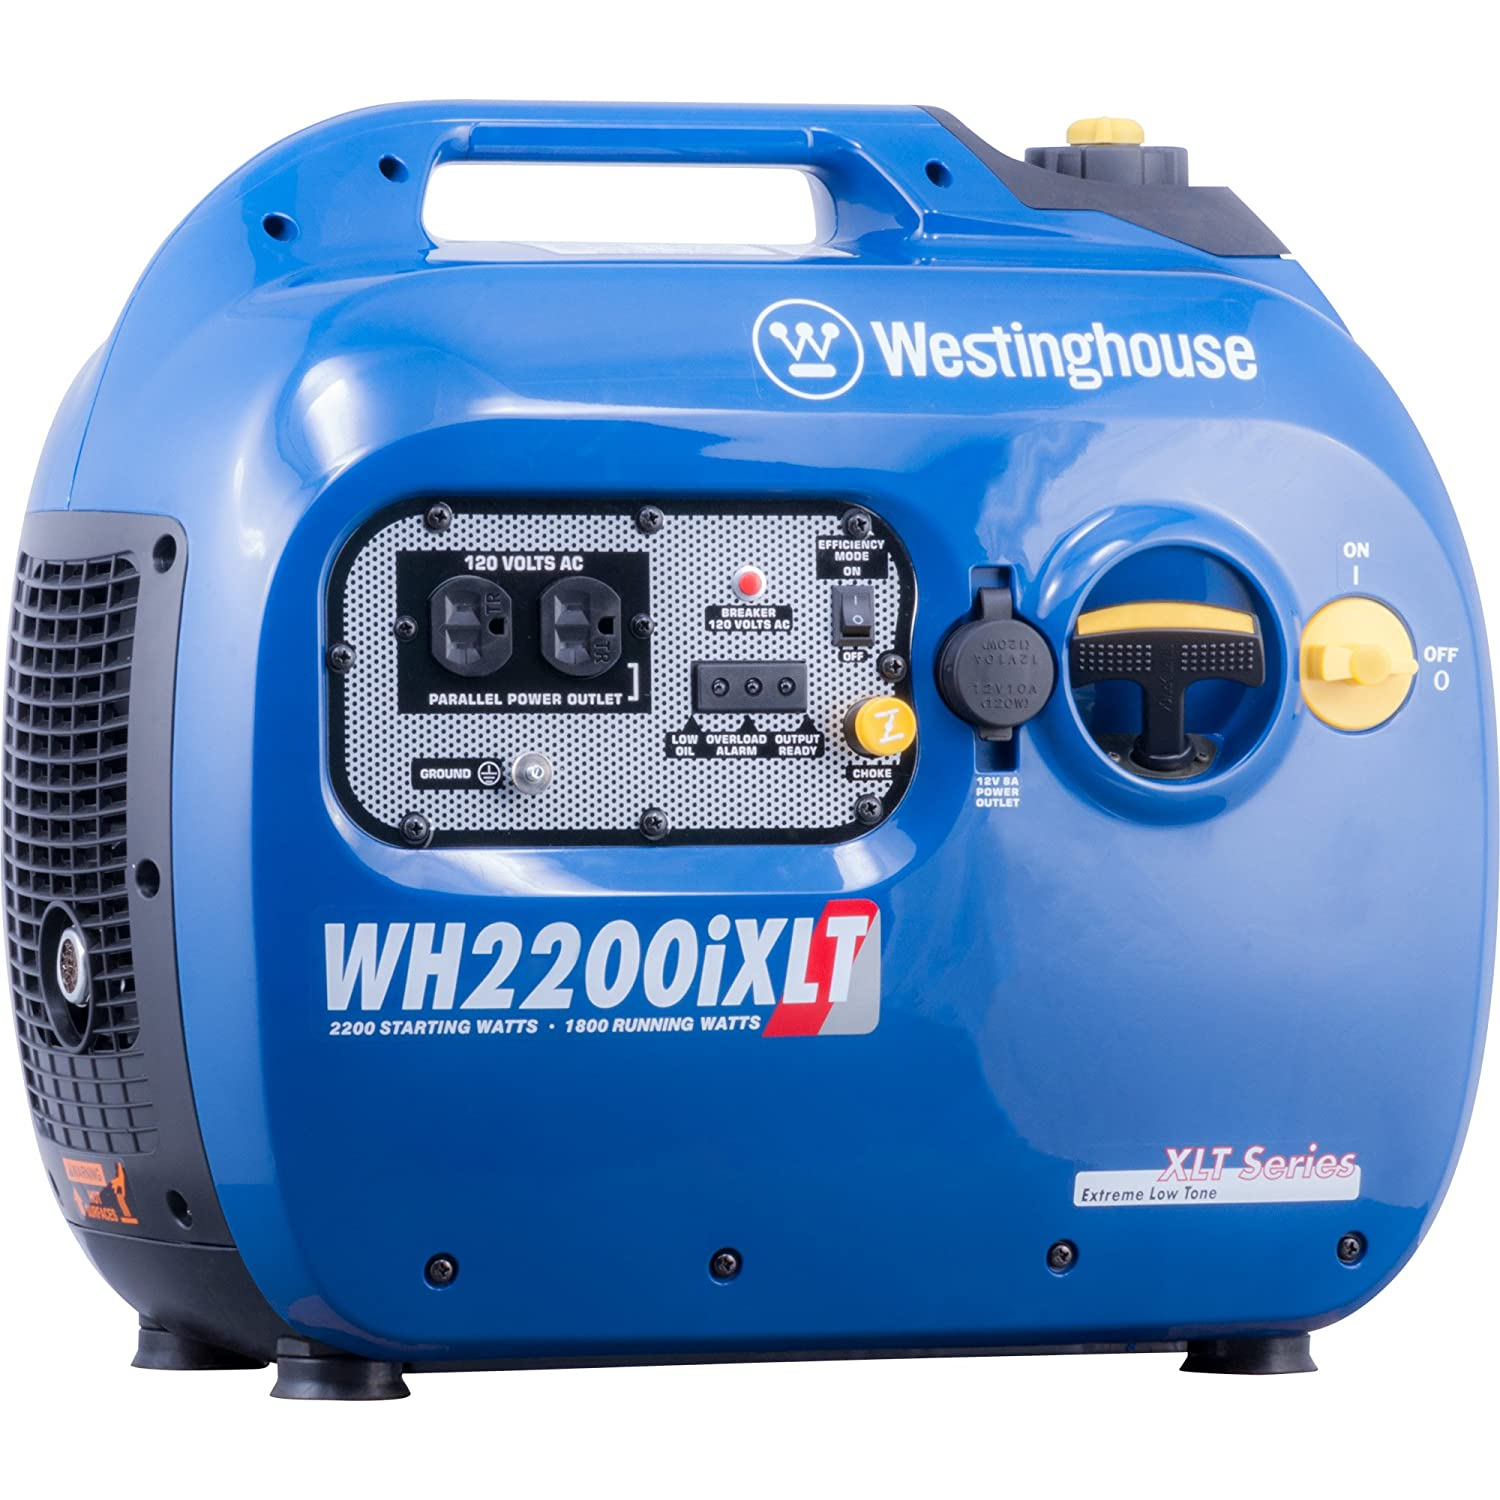 Amazon Westinghouse WH2200iXLT Super Quiet Portable Inverter